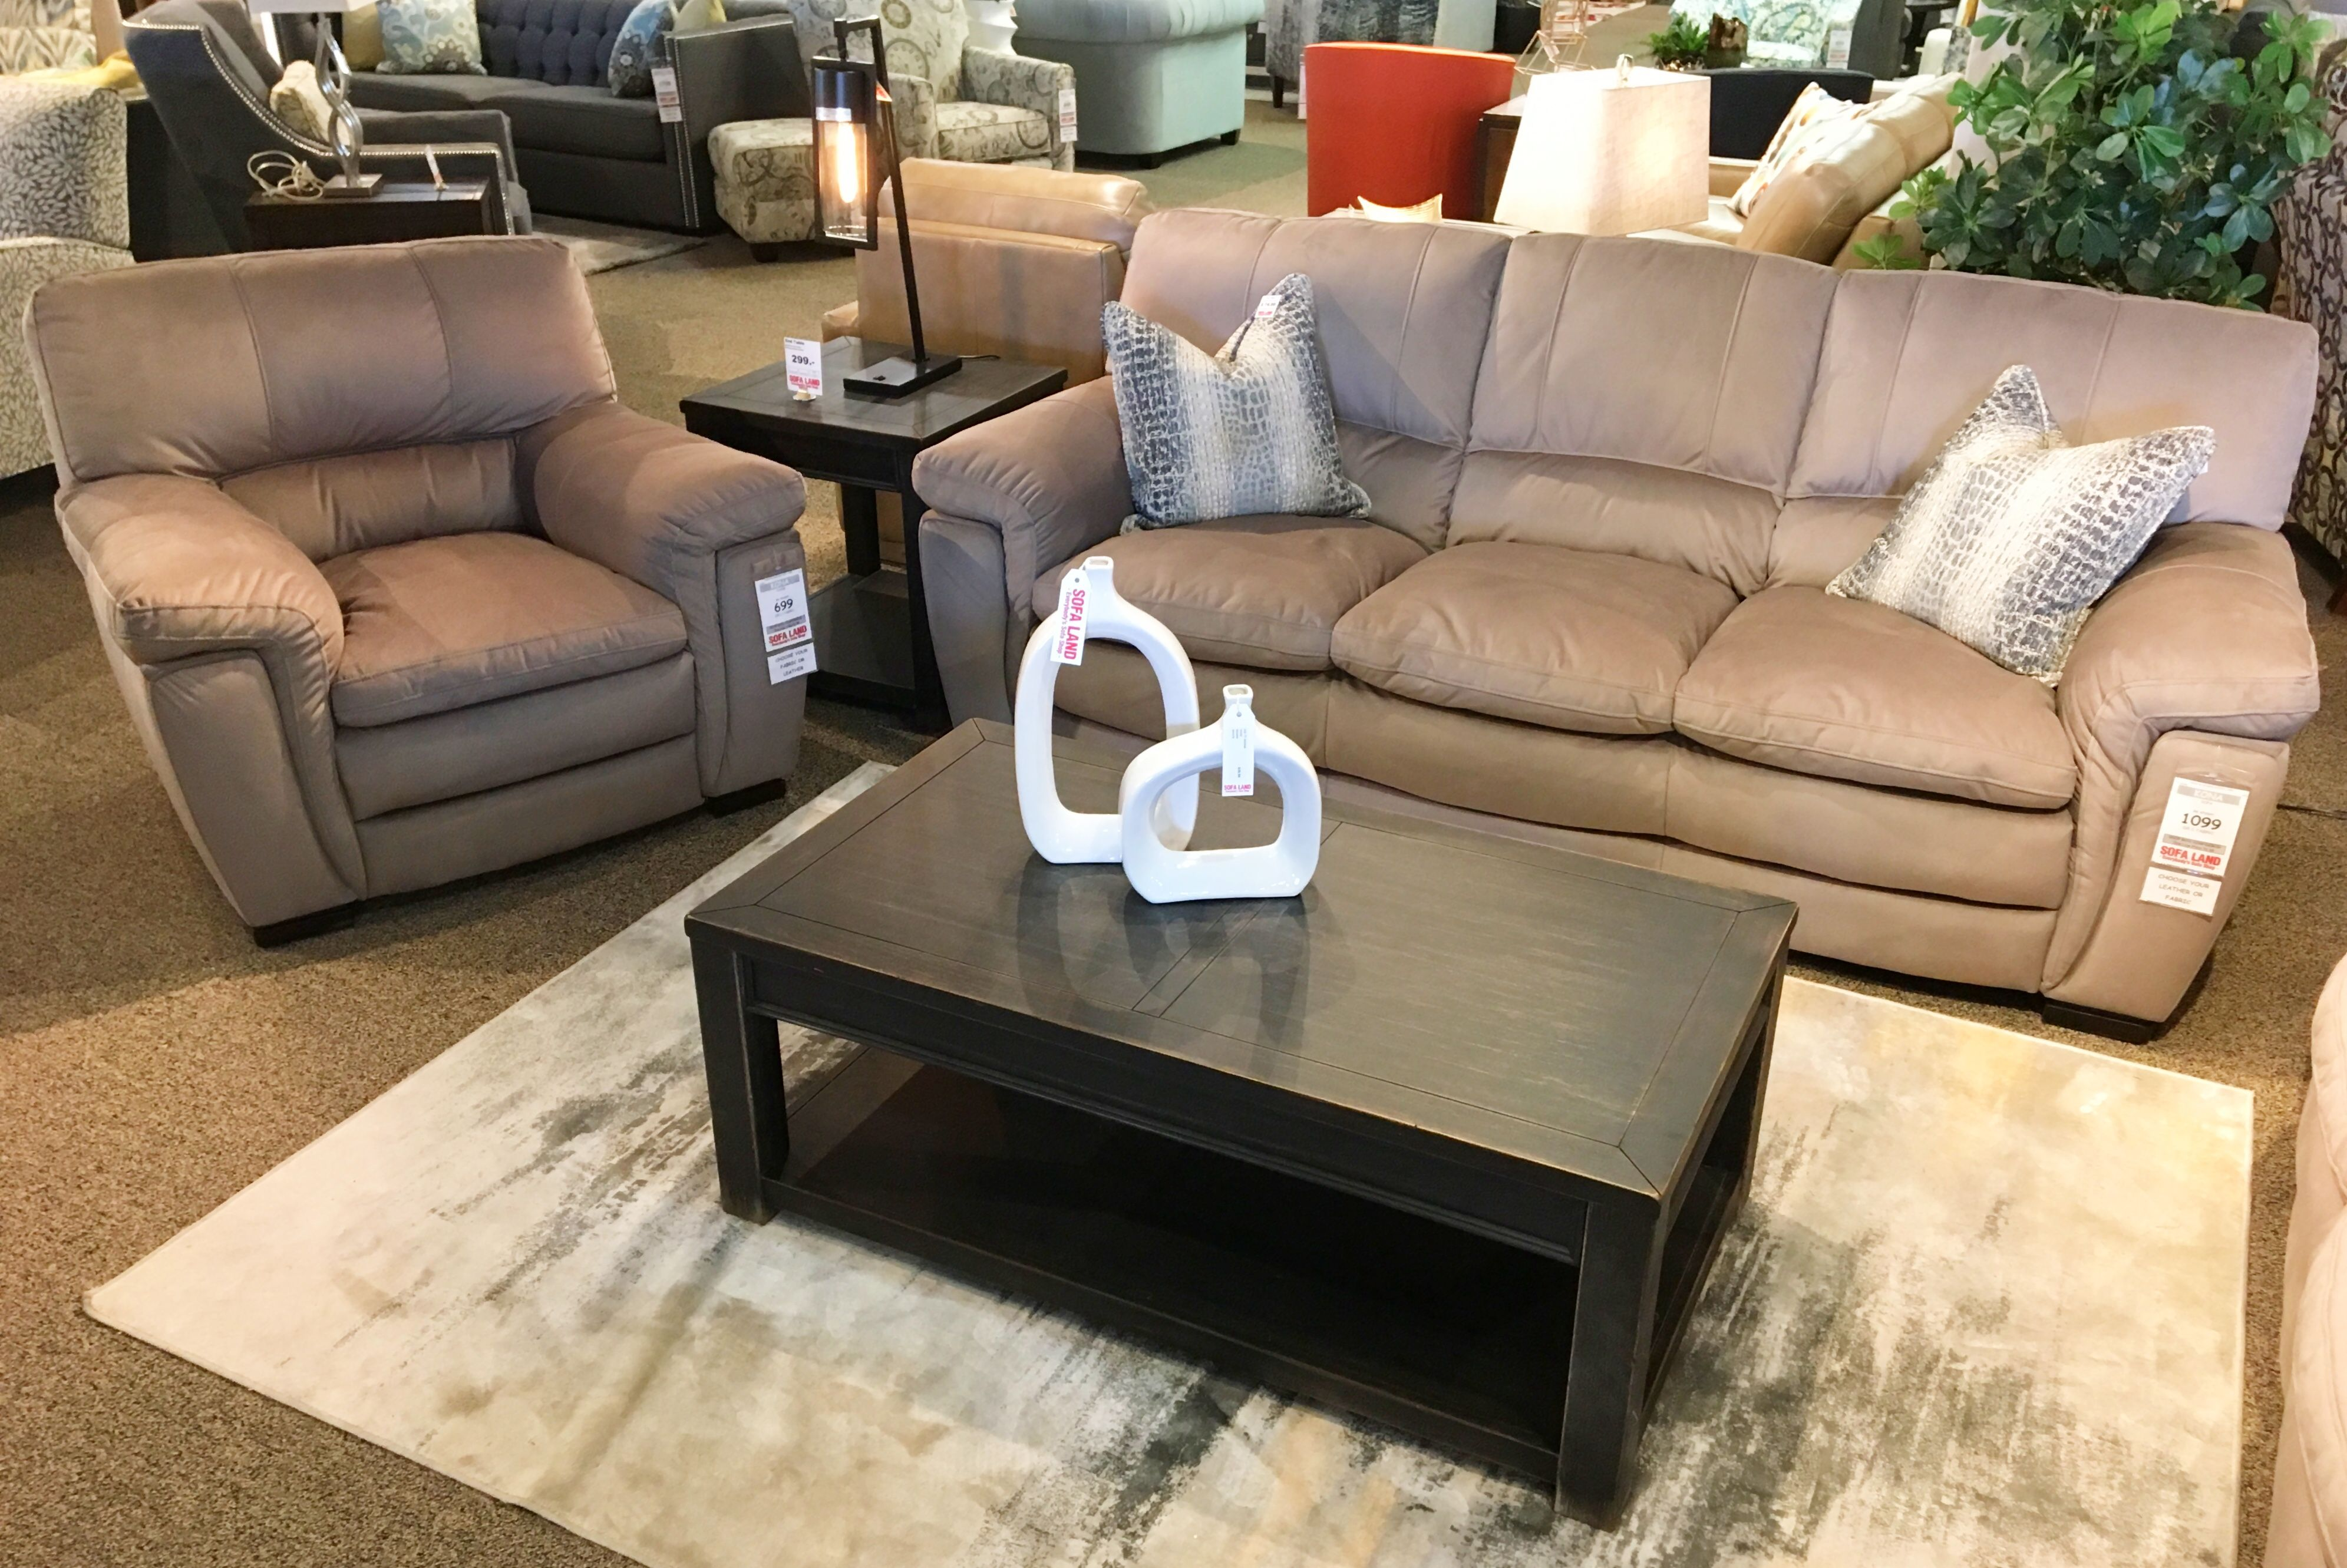 sofaland spain sofas scs chesterfield cuddle chair  review home decor